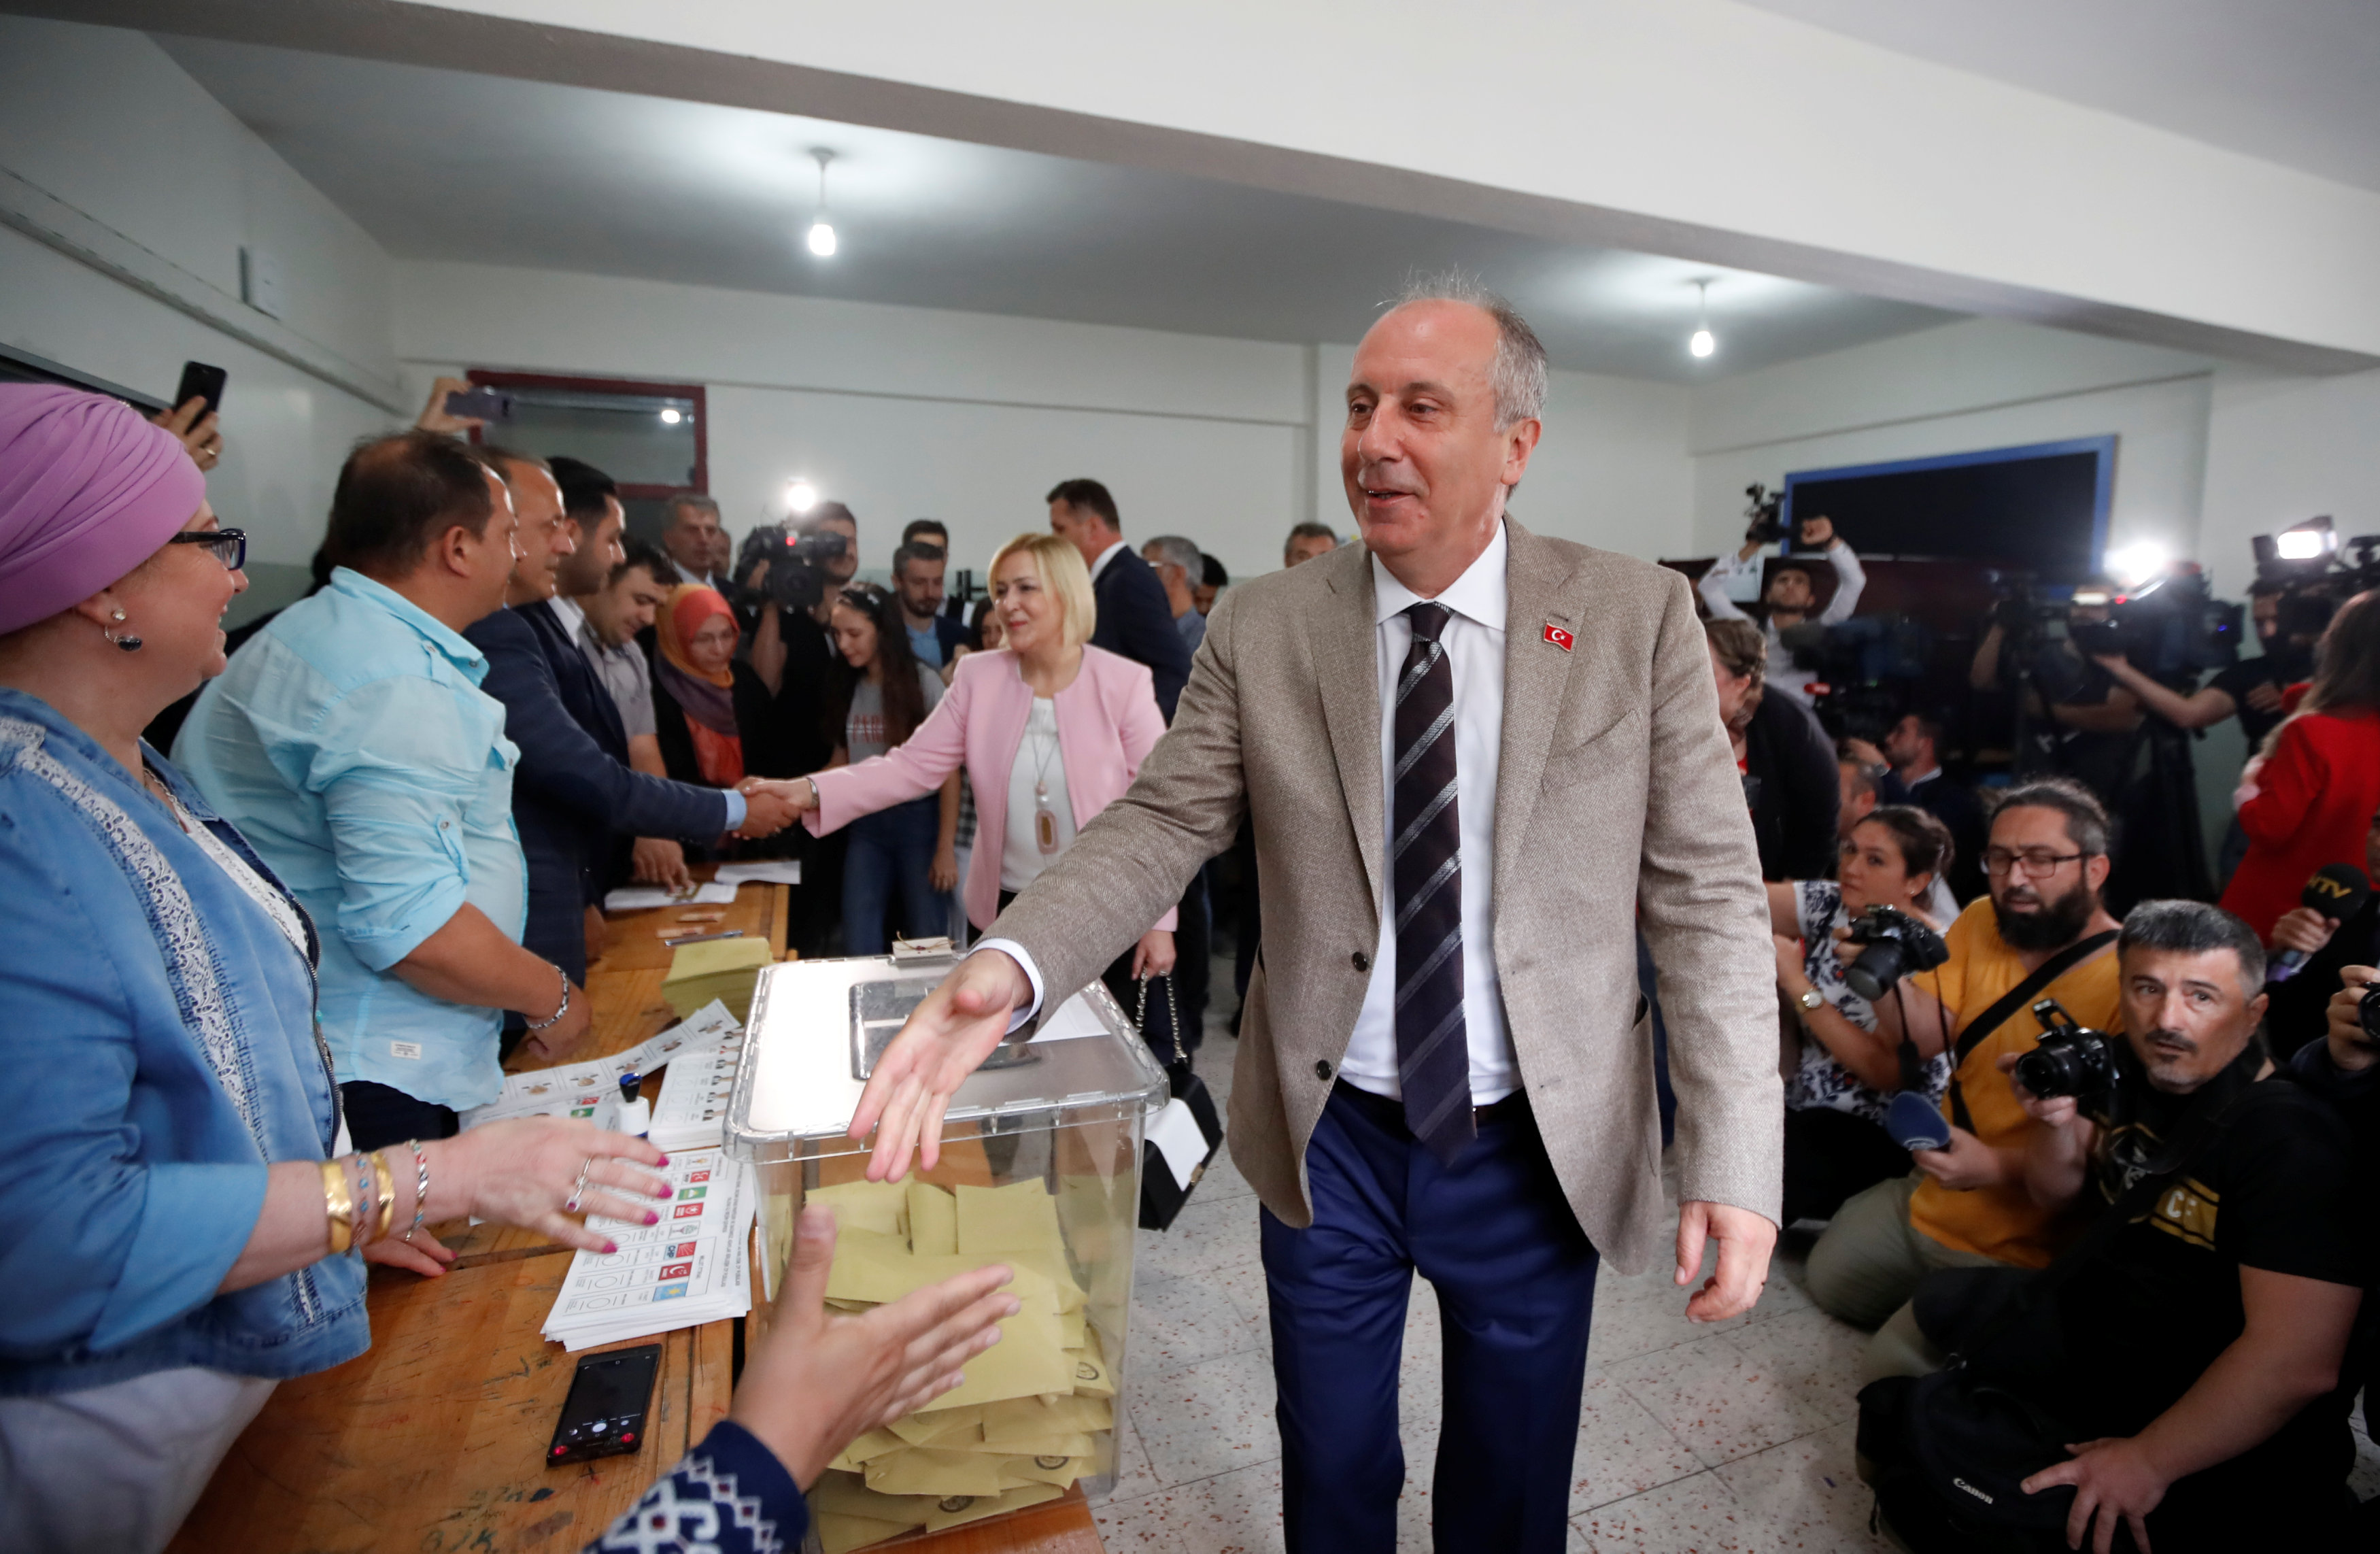 2018-06-24T074427Z_1825475853_RC182FCB15F0_RTRMADP_3_TURKEY-ELECTION